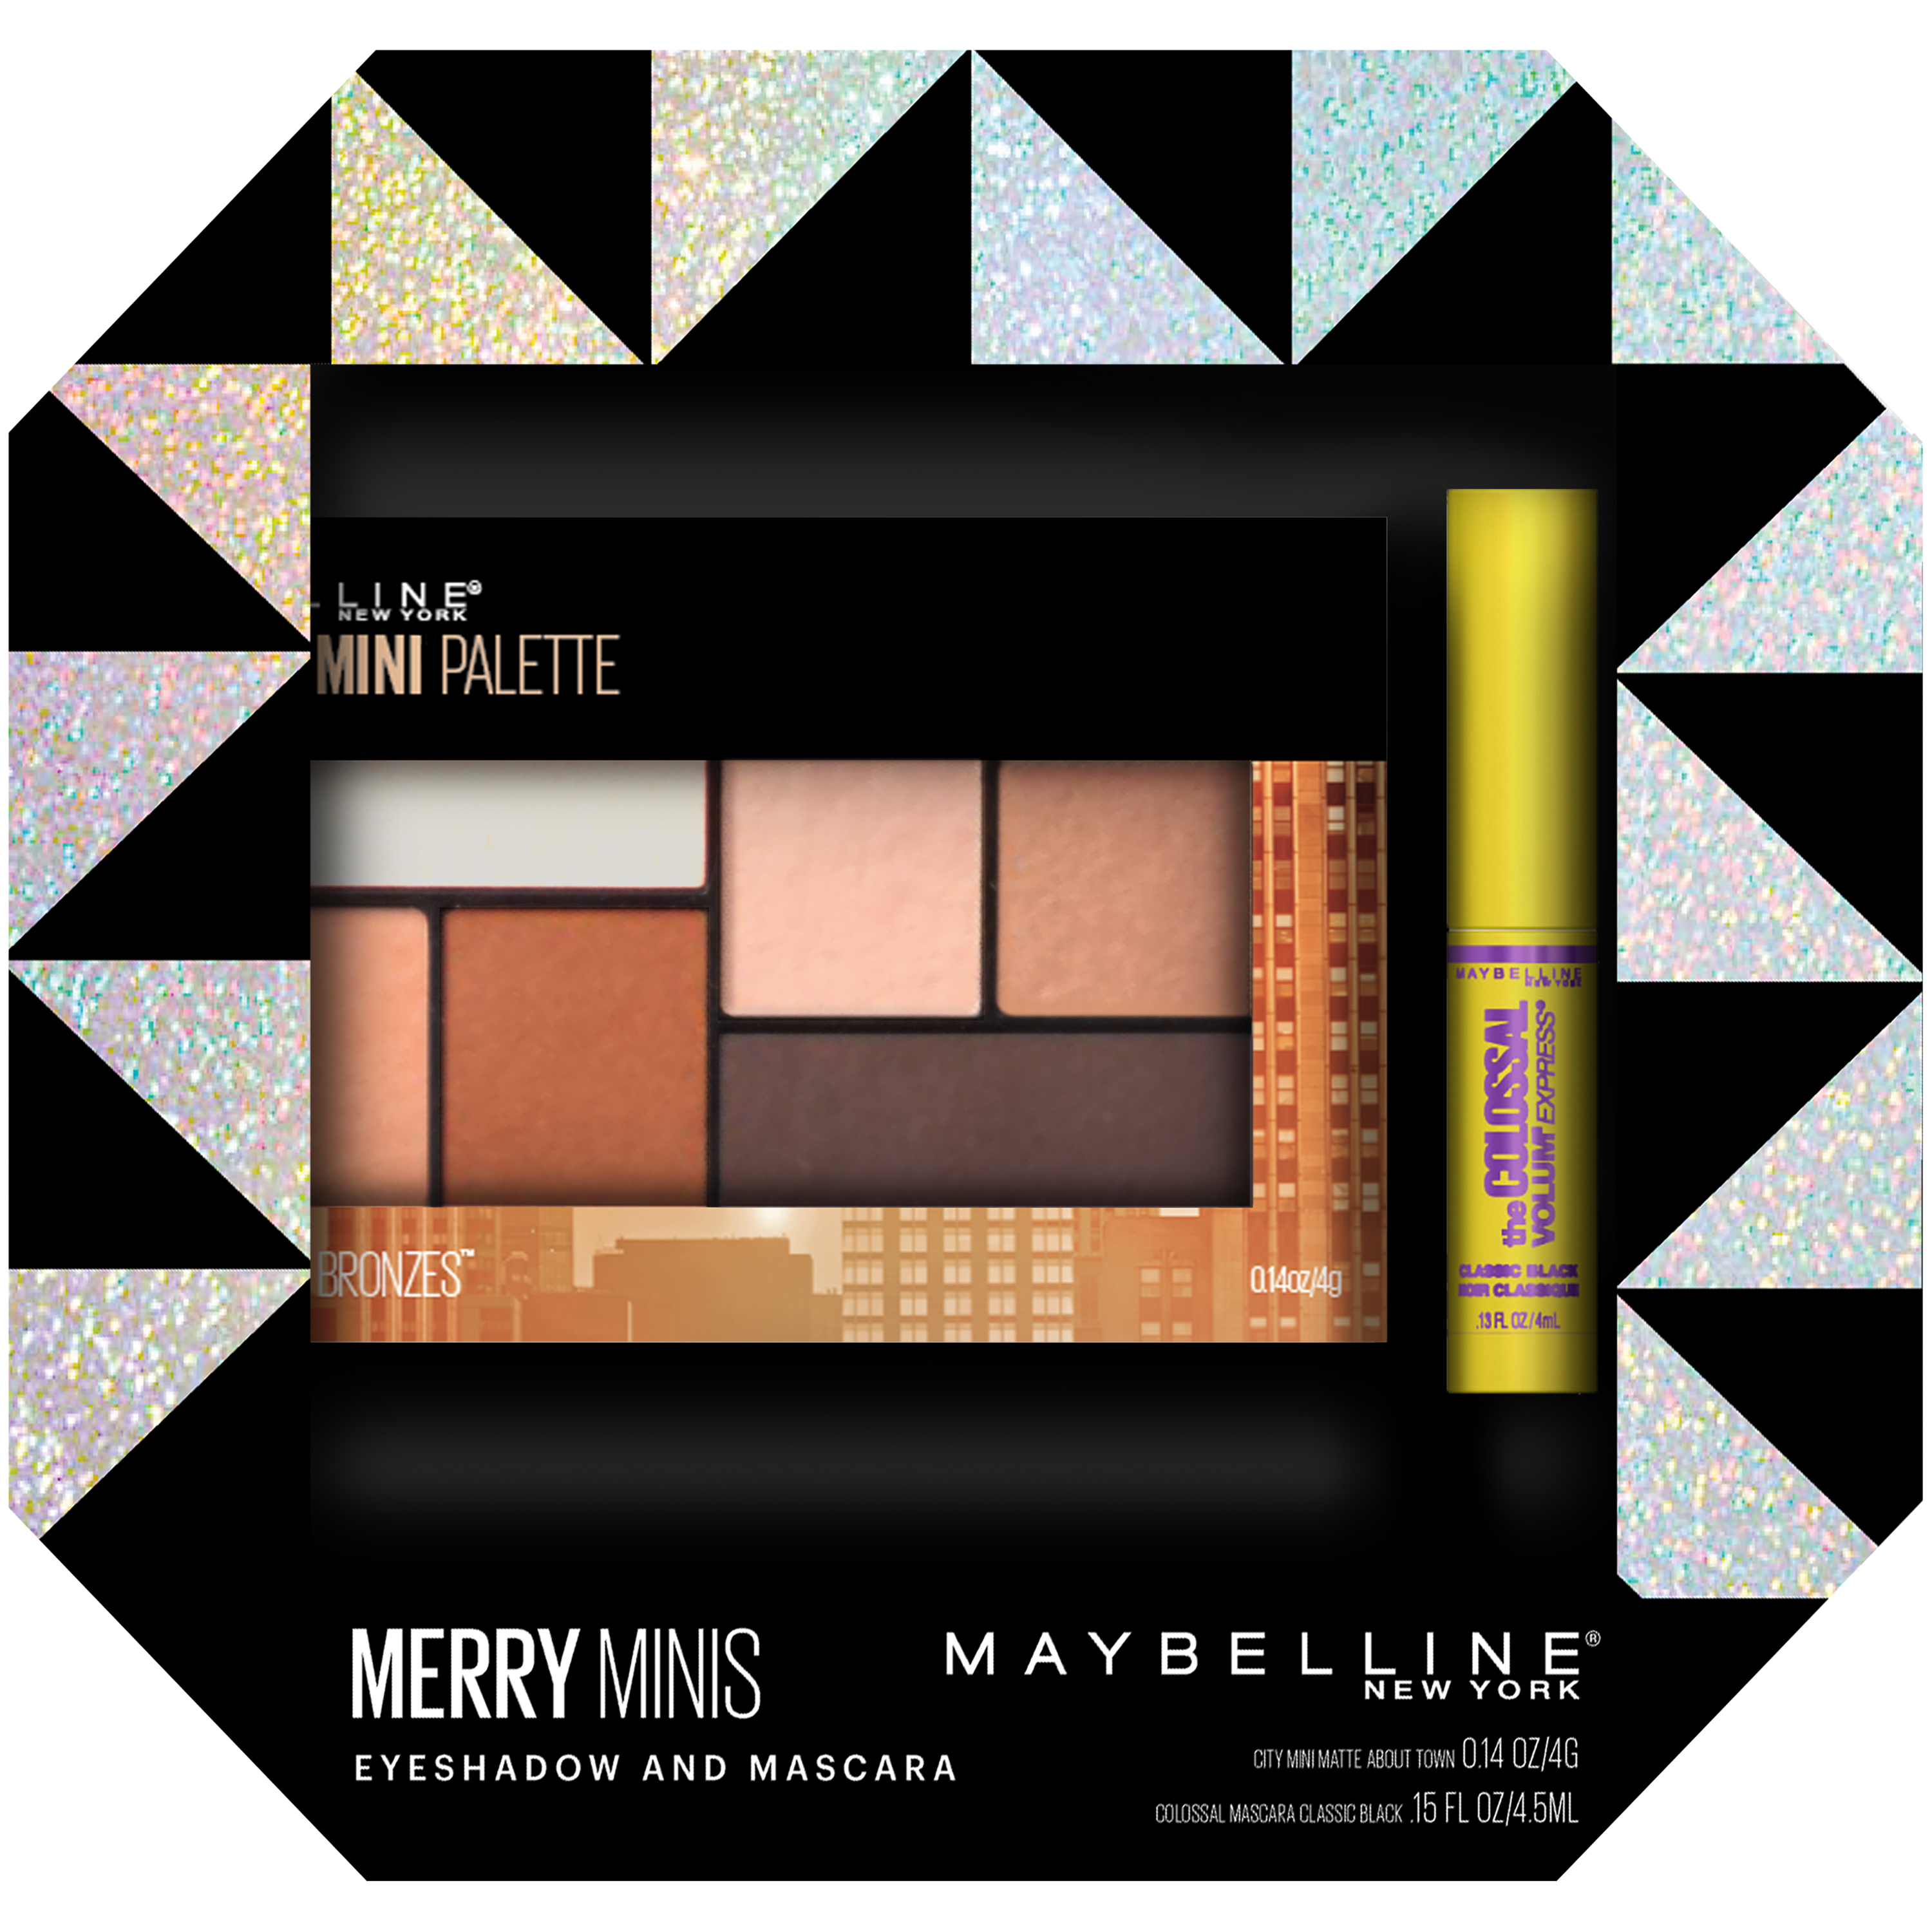 Maybelline Merry Minis Eyeshadow and Mascara Kit